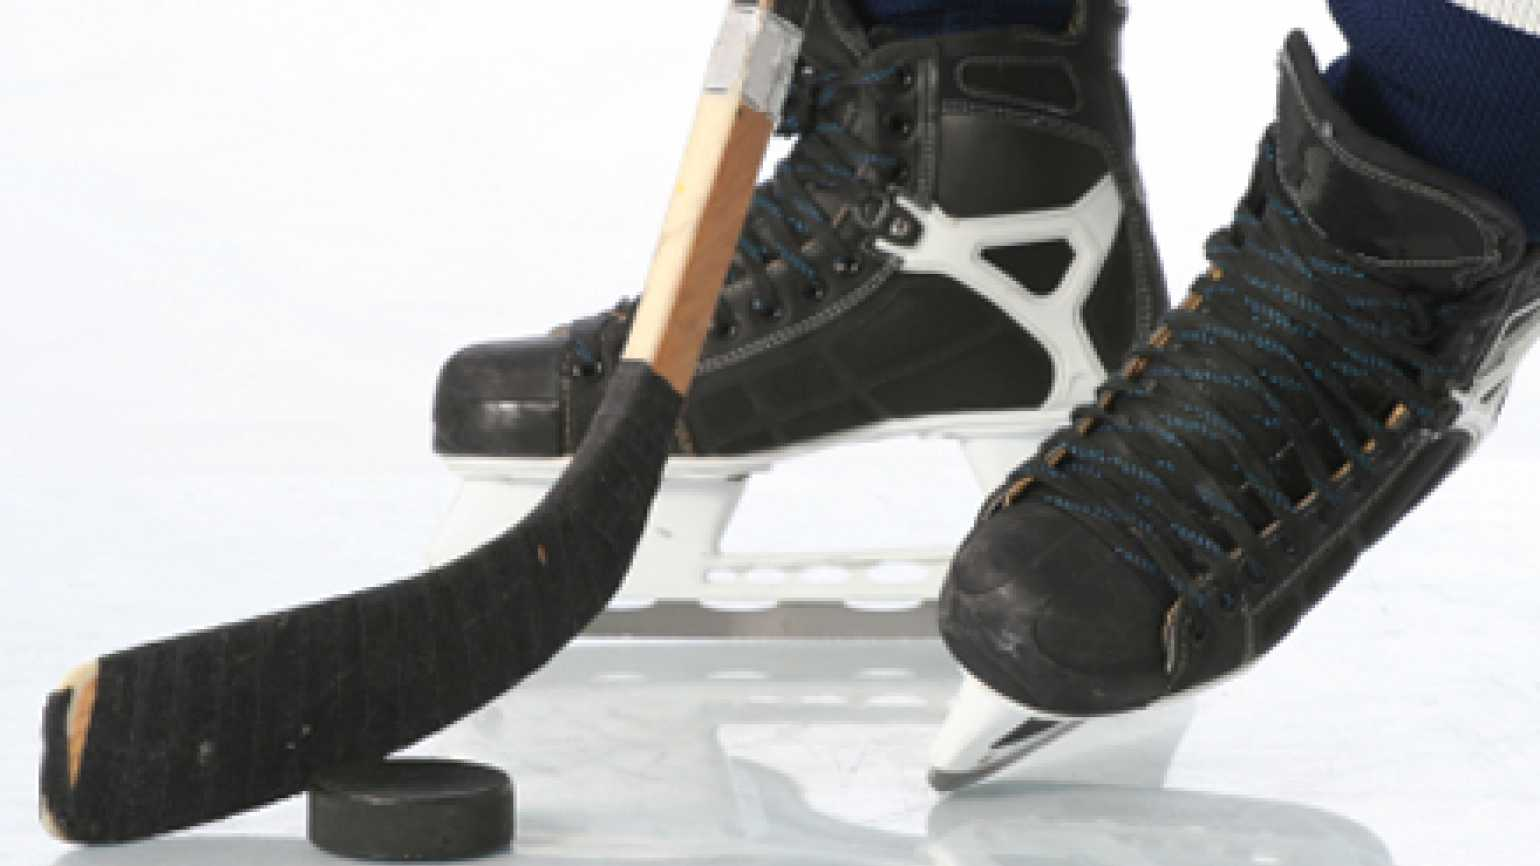 Hockey's most inspirational stories